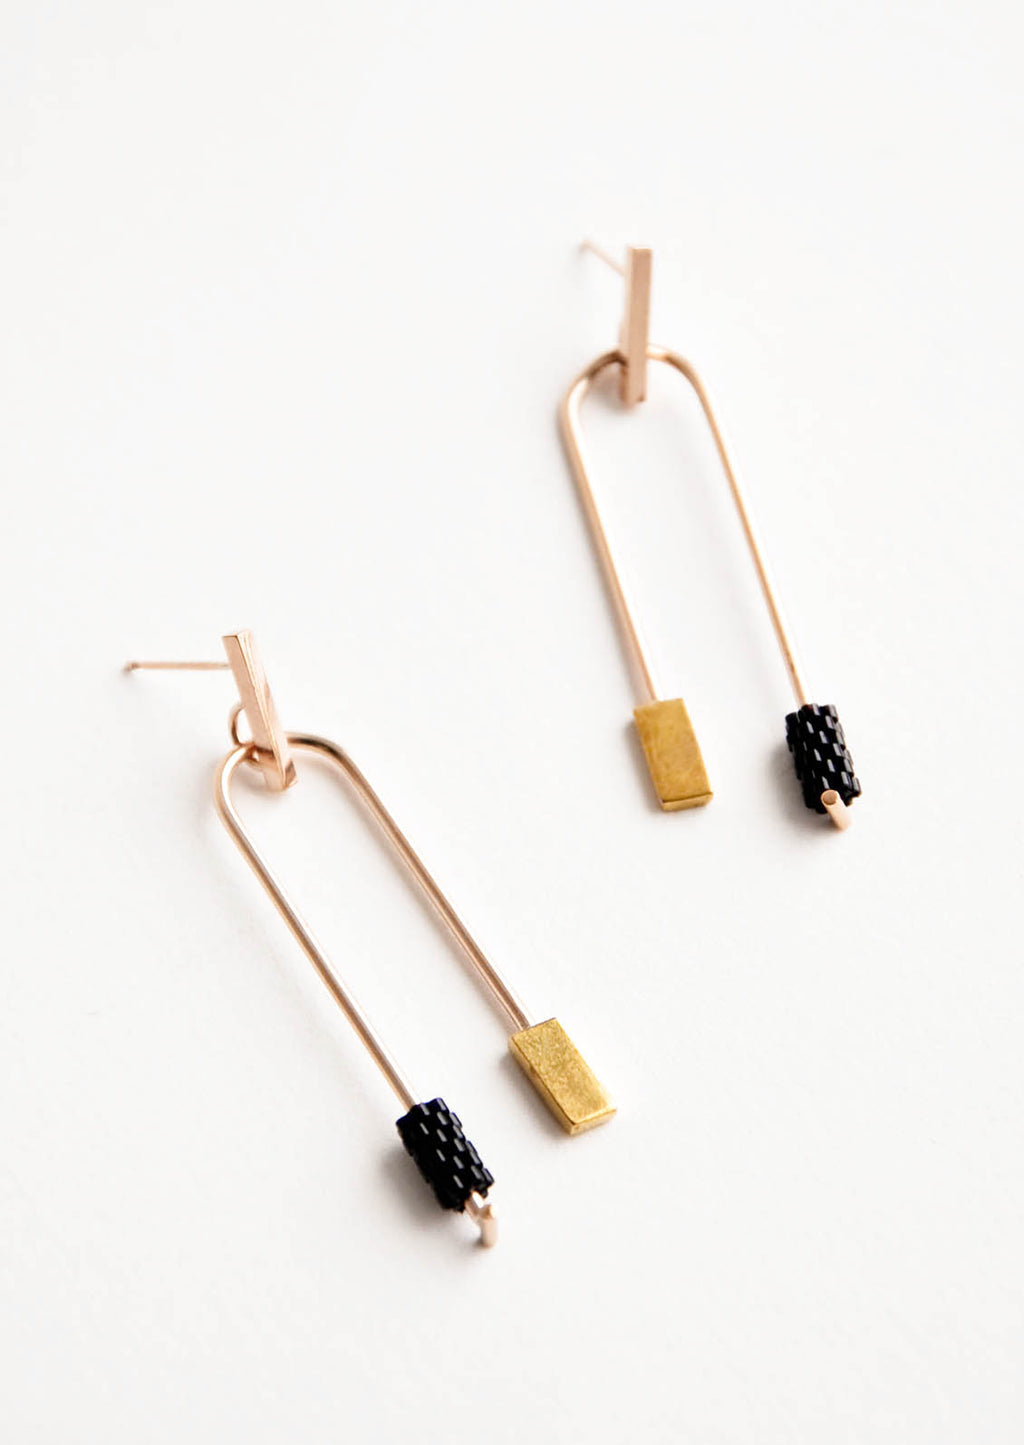 Onyx: Post back gold earrings with curved arc featuring one black beaded end and one square gold end.